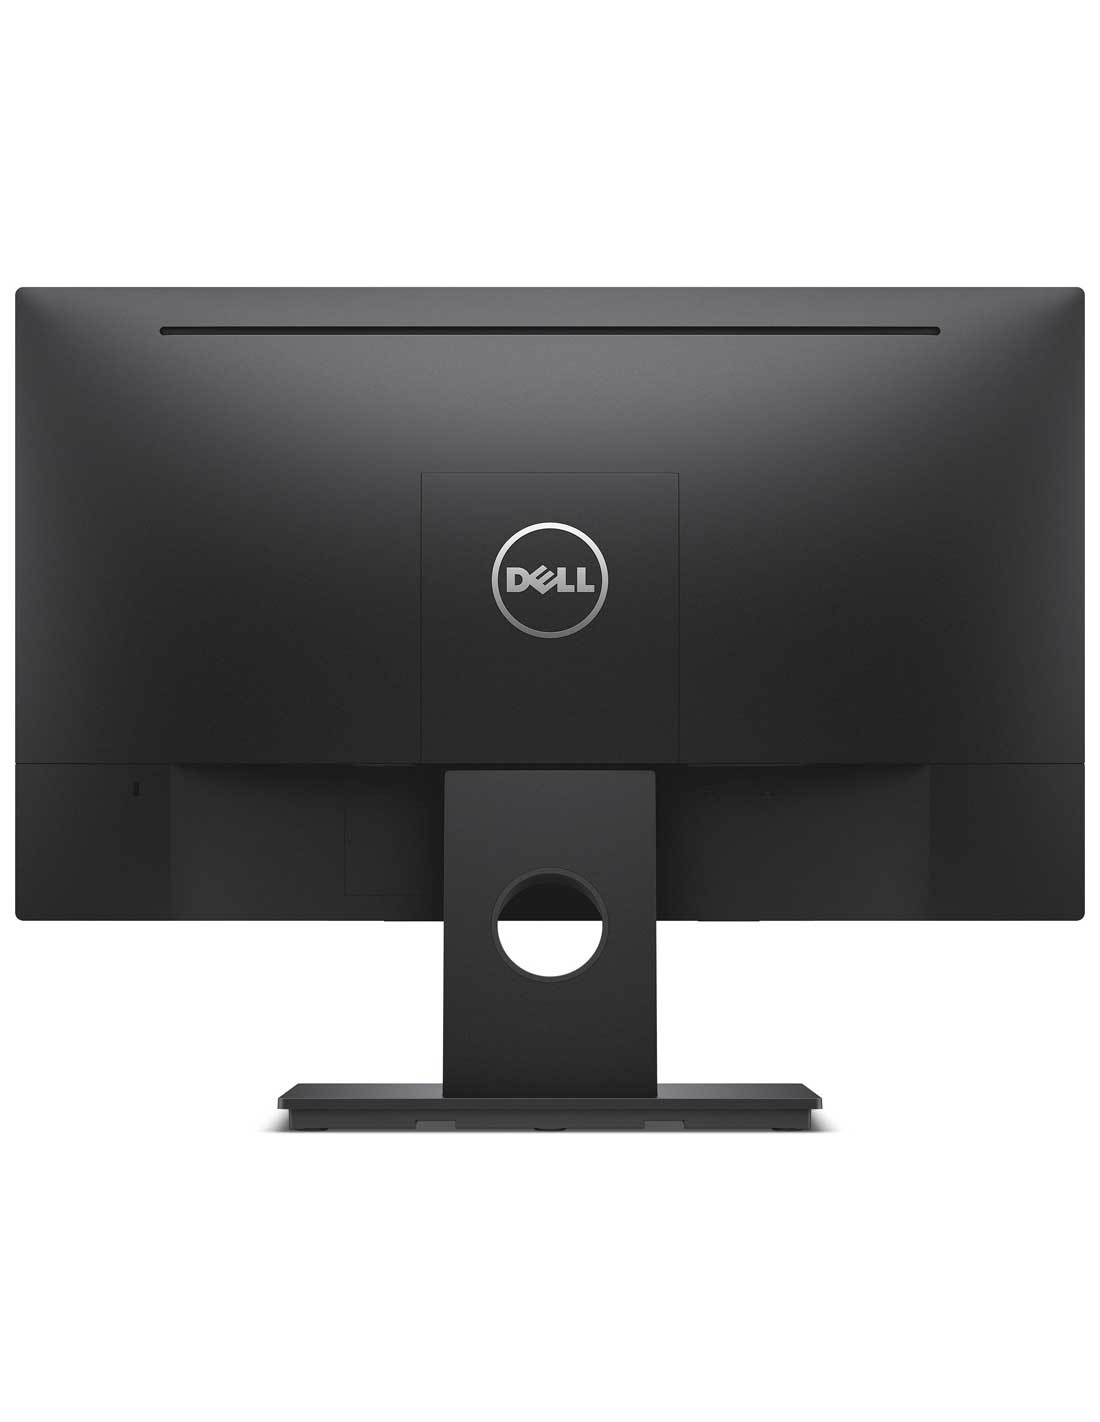 Dell 22 Monitor E2216H specs features images in Dubai computer store